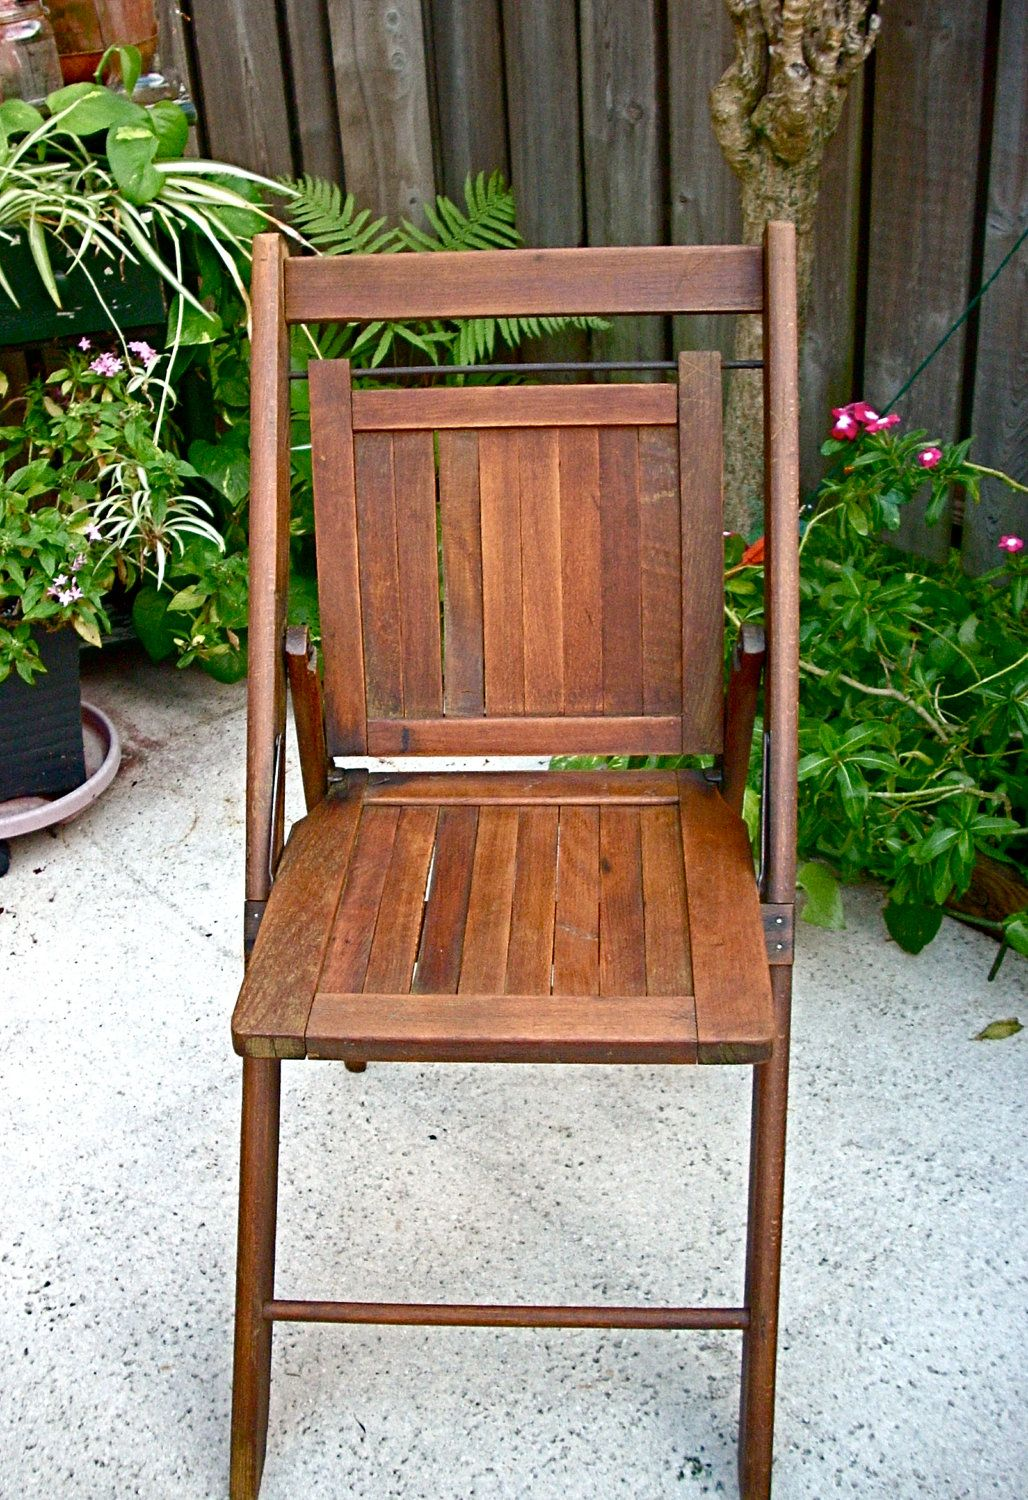 mccabe camping chairs staples turcotte chair review vintage wooden folding furniturista pinterest via etsy